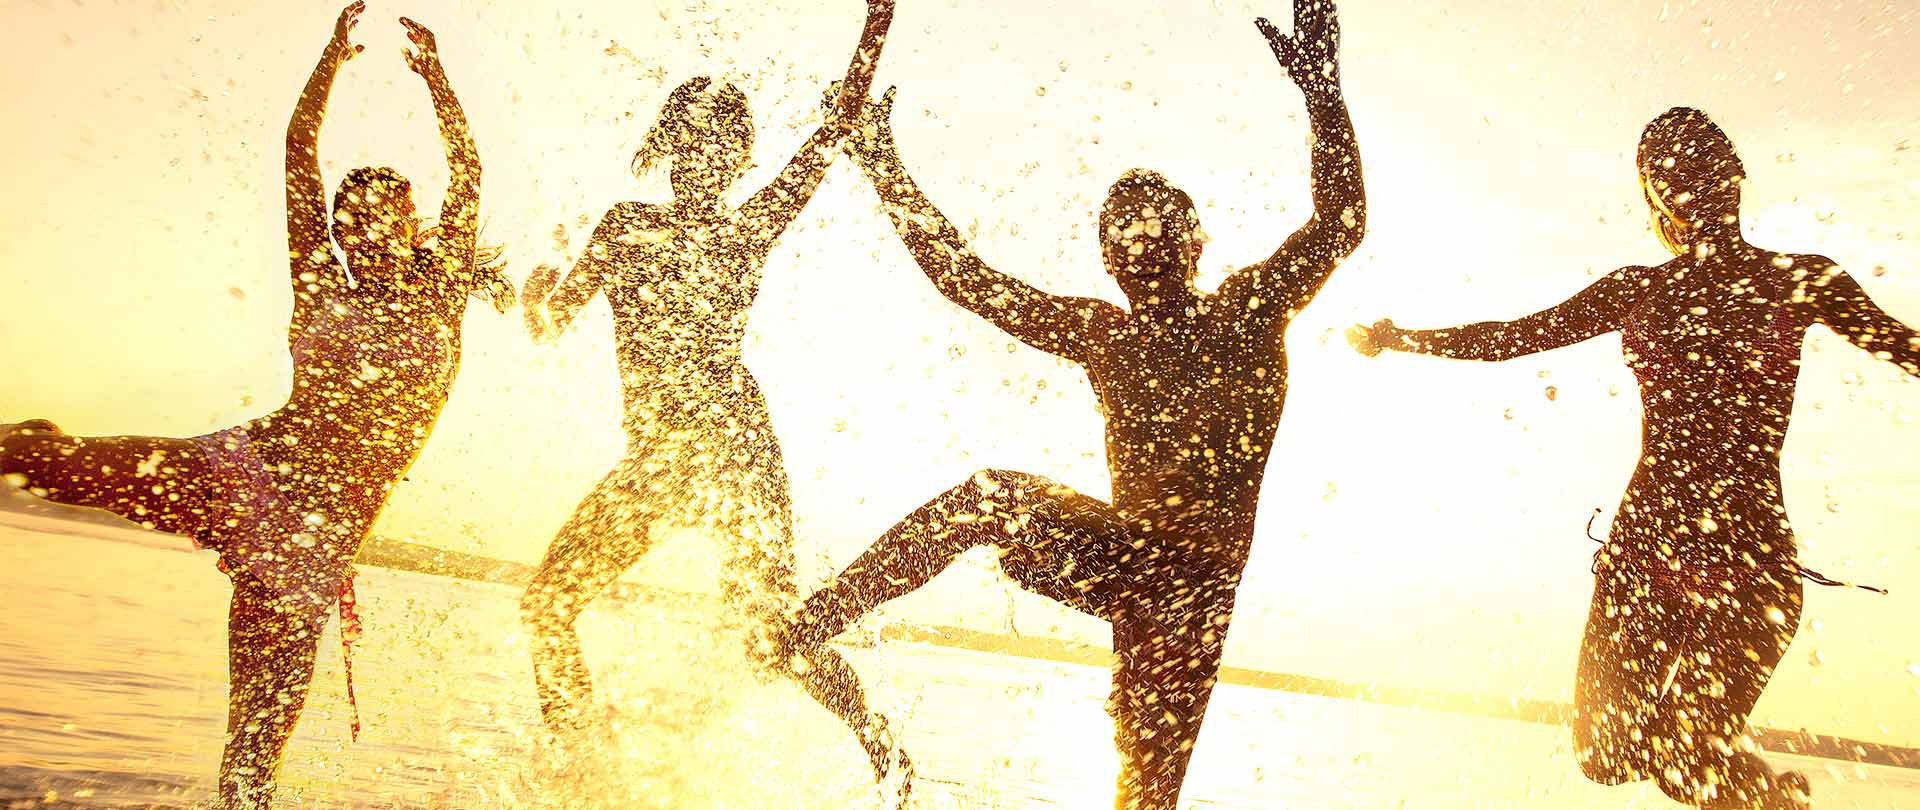 Silhouette of people playing in water